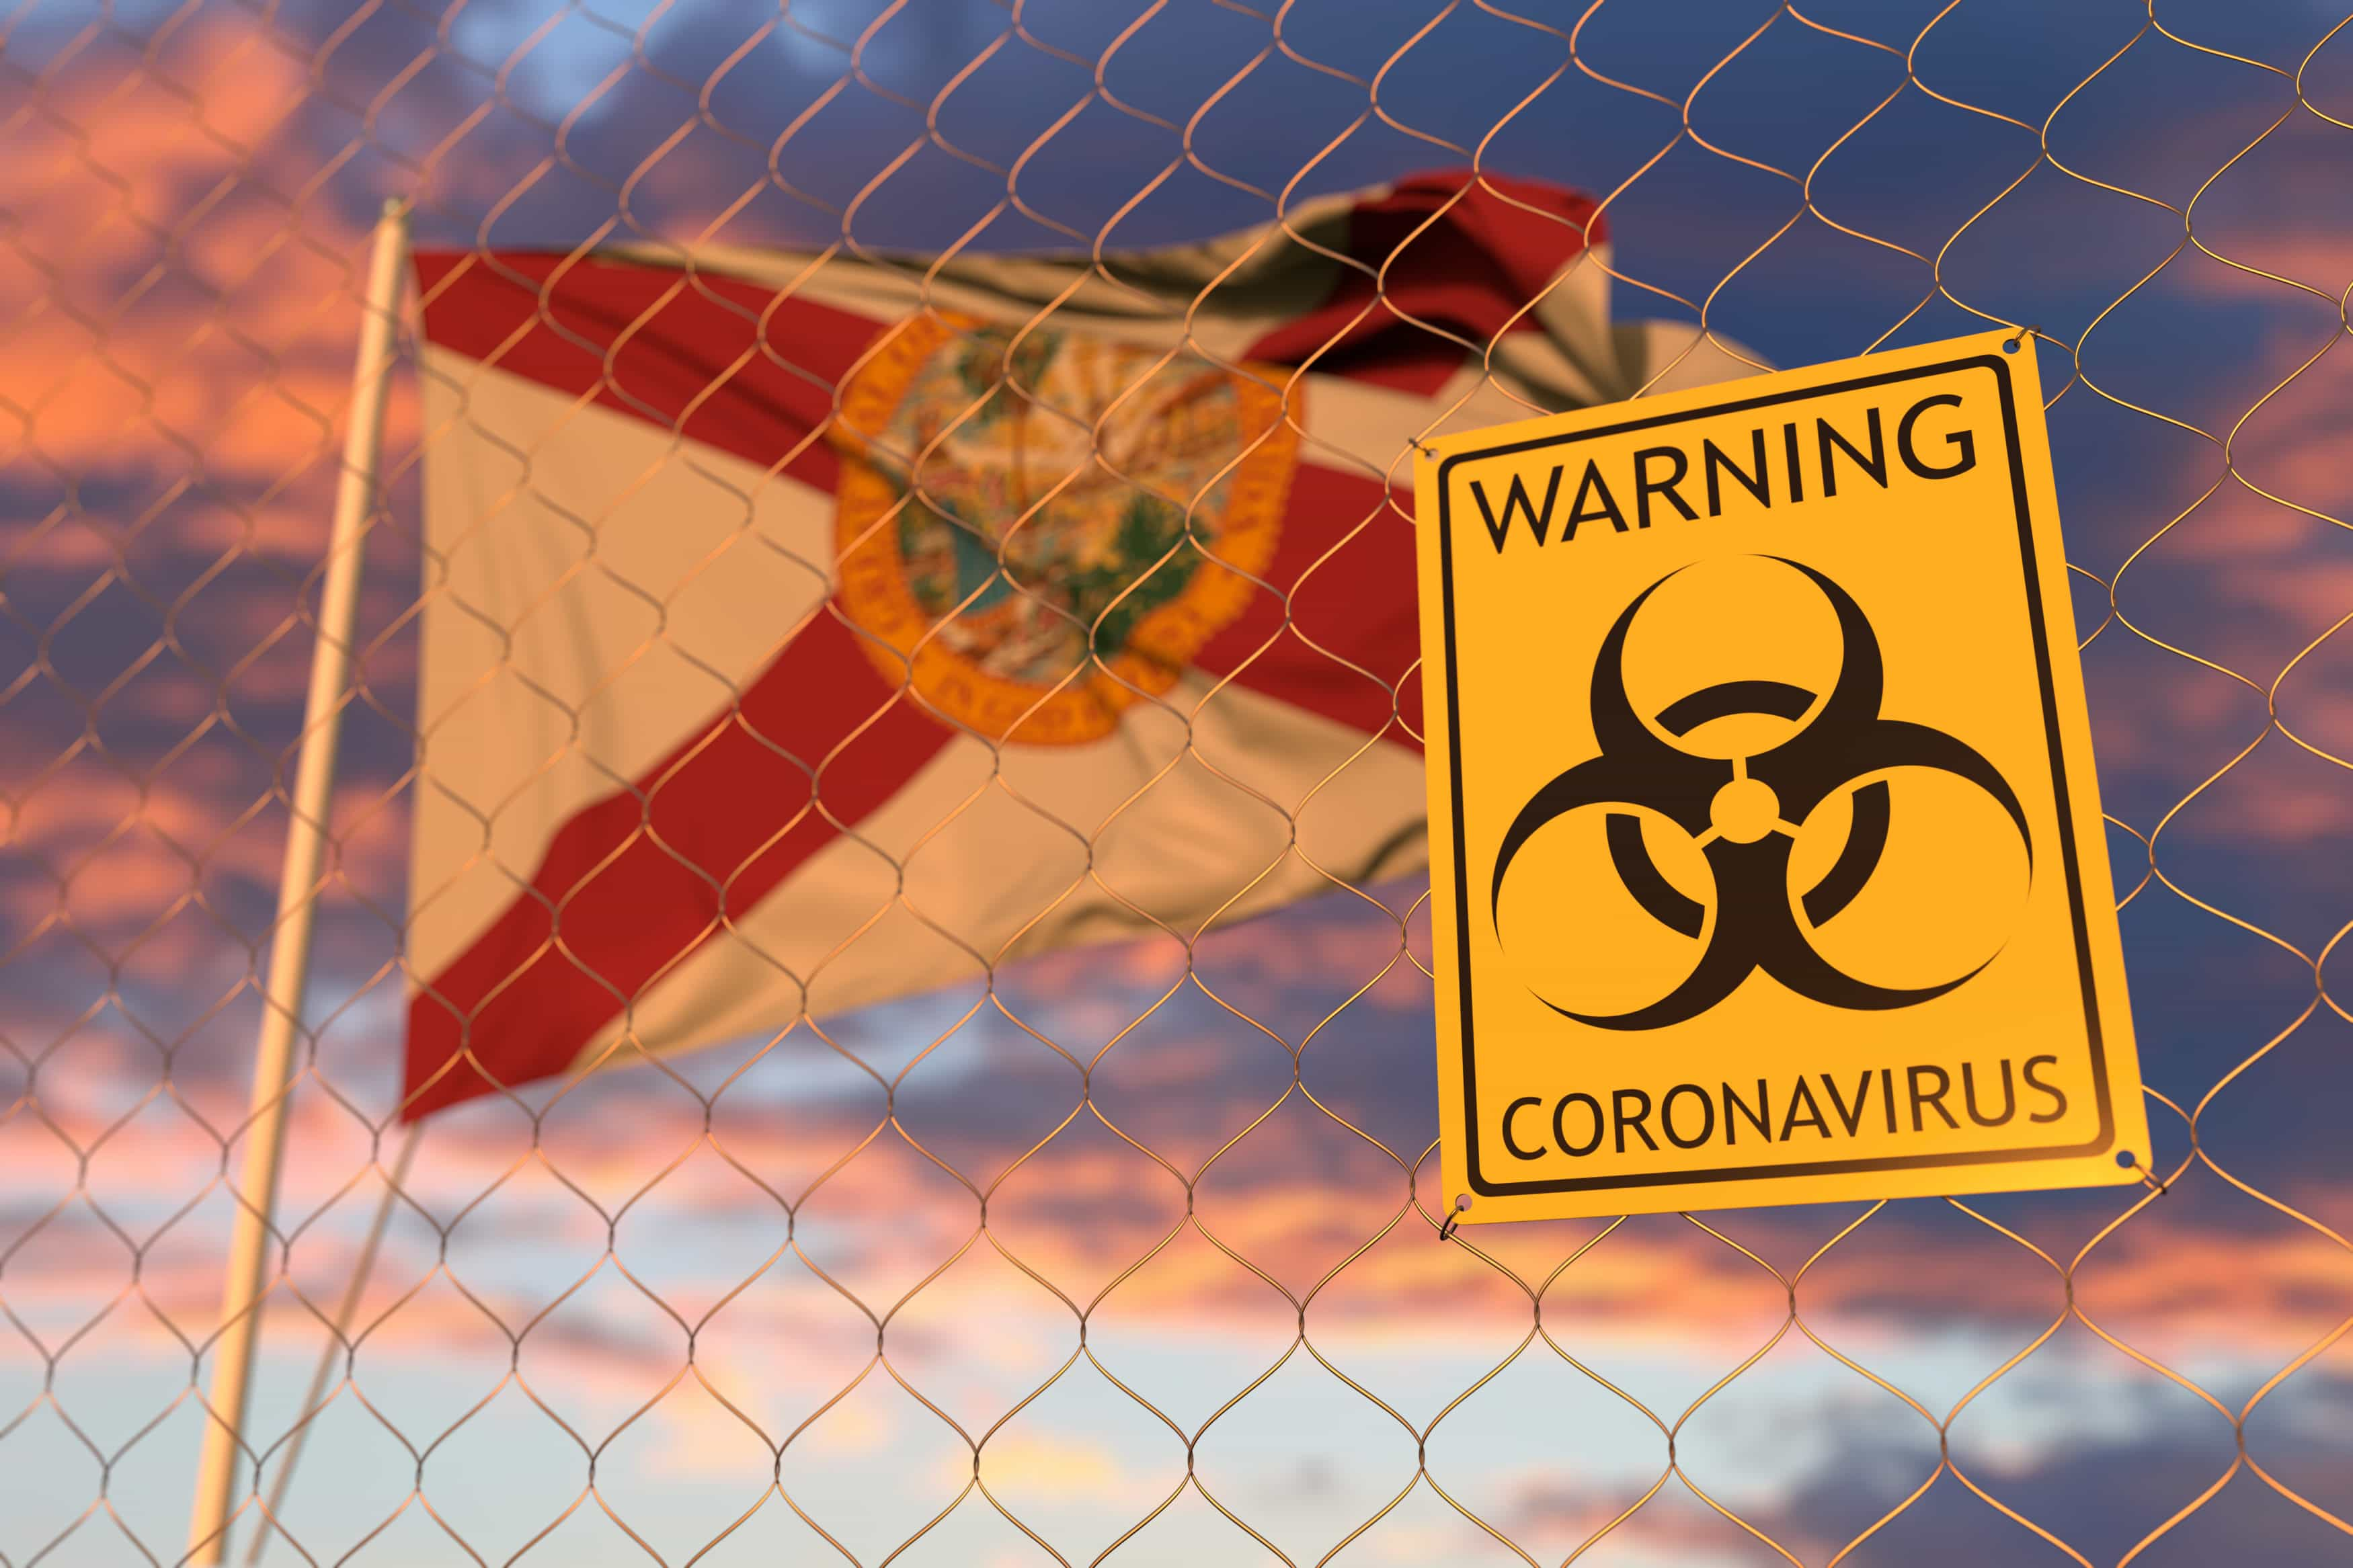 coronavirus-in-florida-1-3500x2333.jpeg